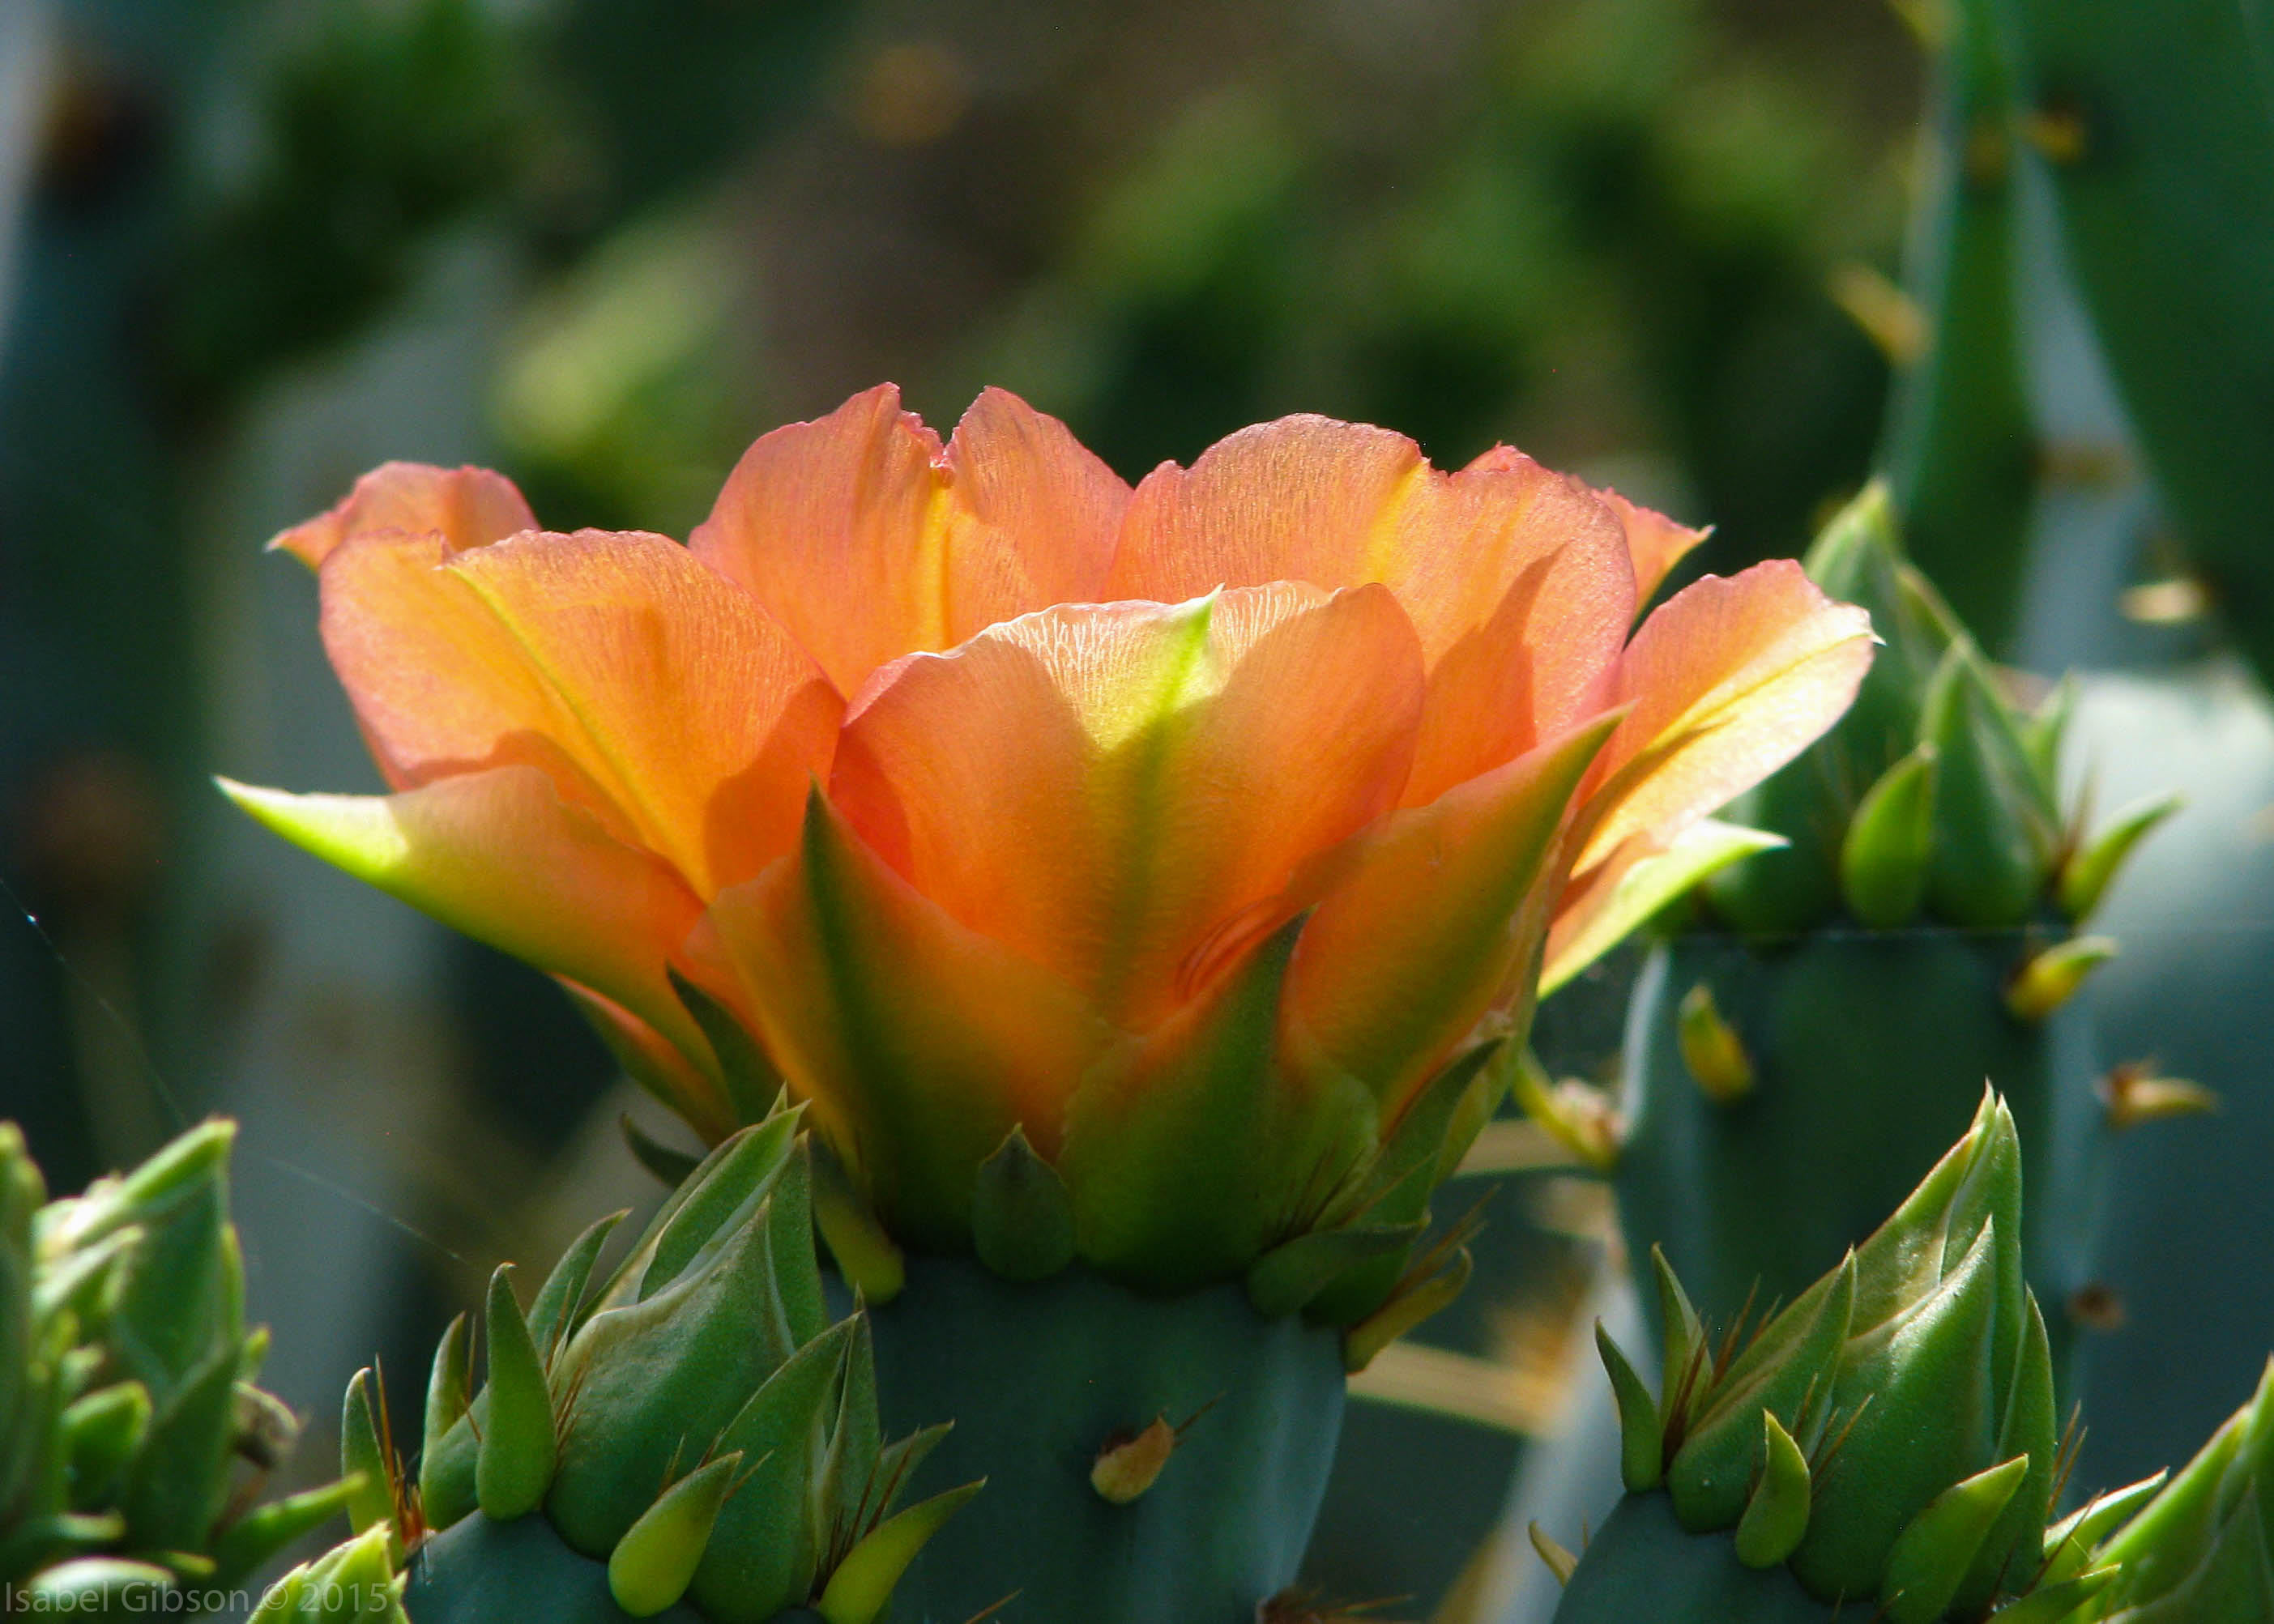 Close-up of light-orange blossom of prickly pear cactus.